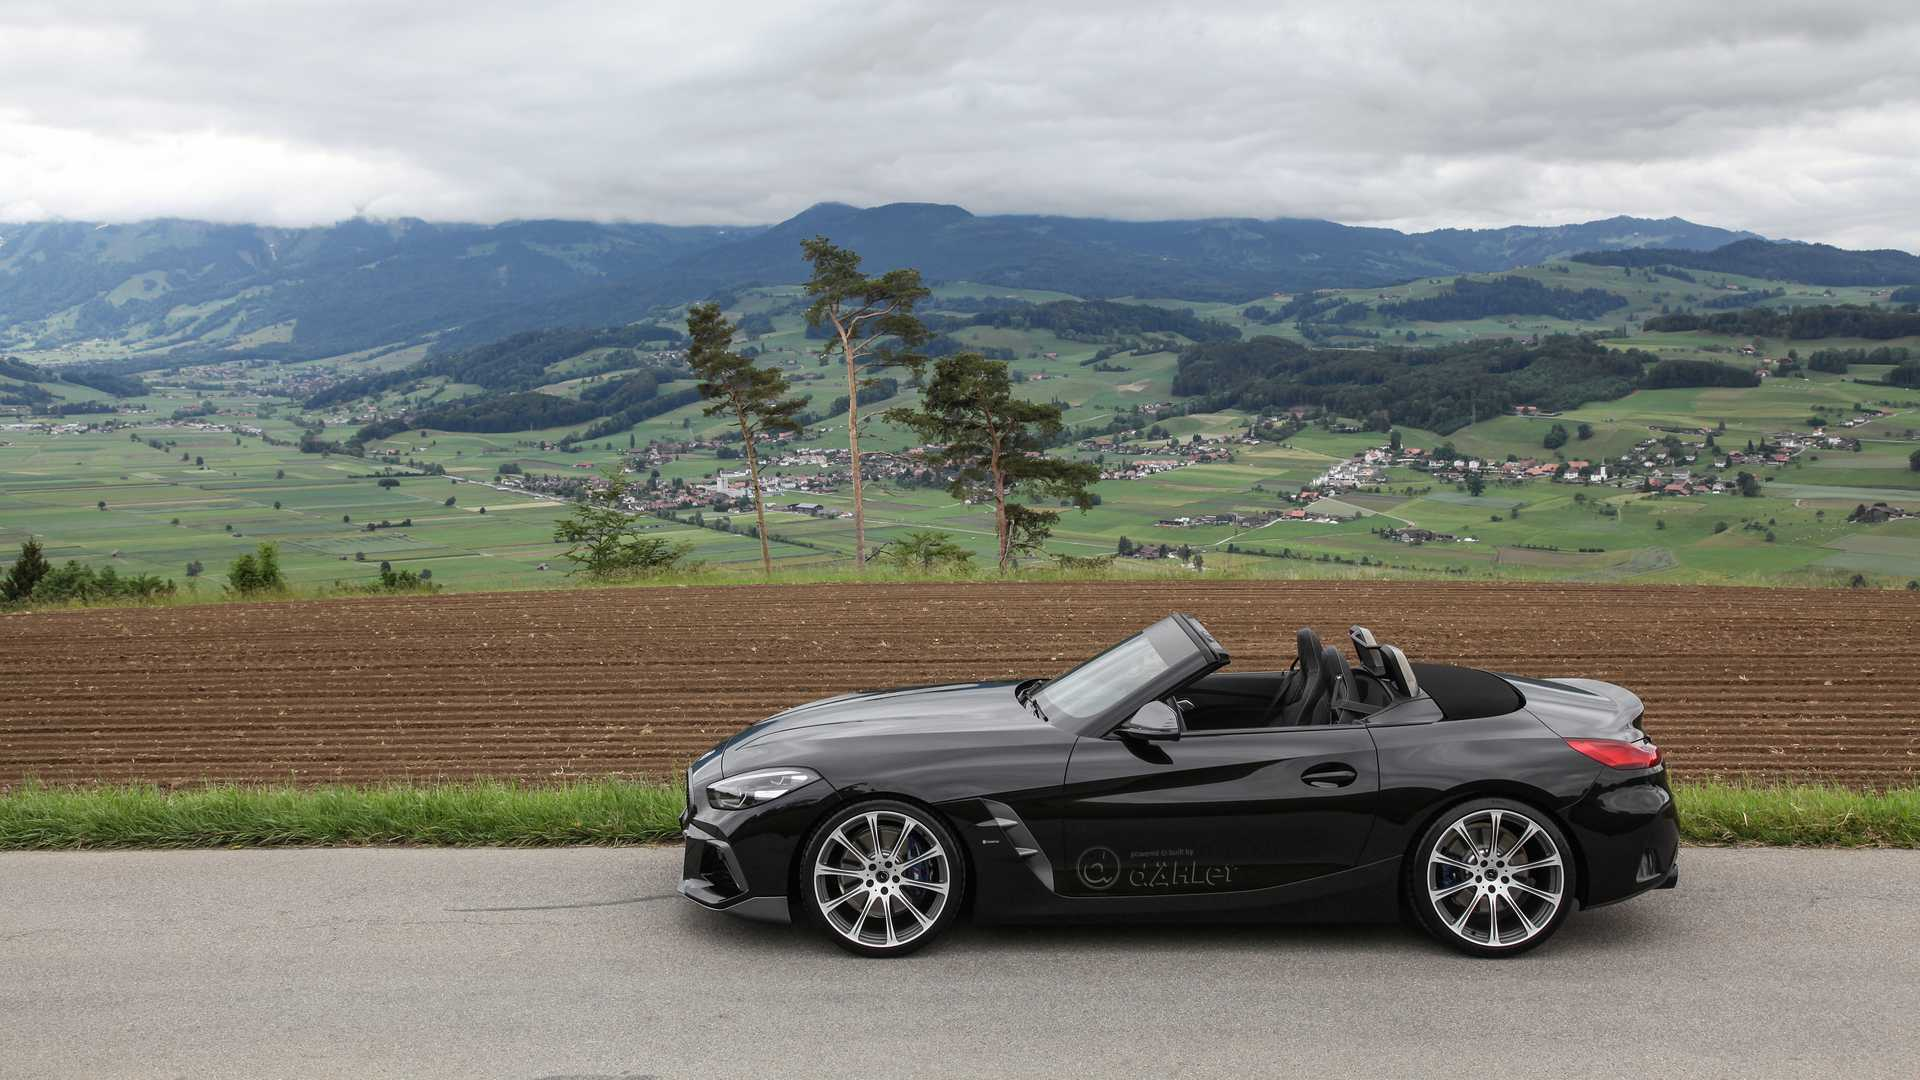 BMW-Z4-M40i-by-Dahler-6